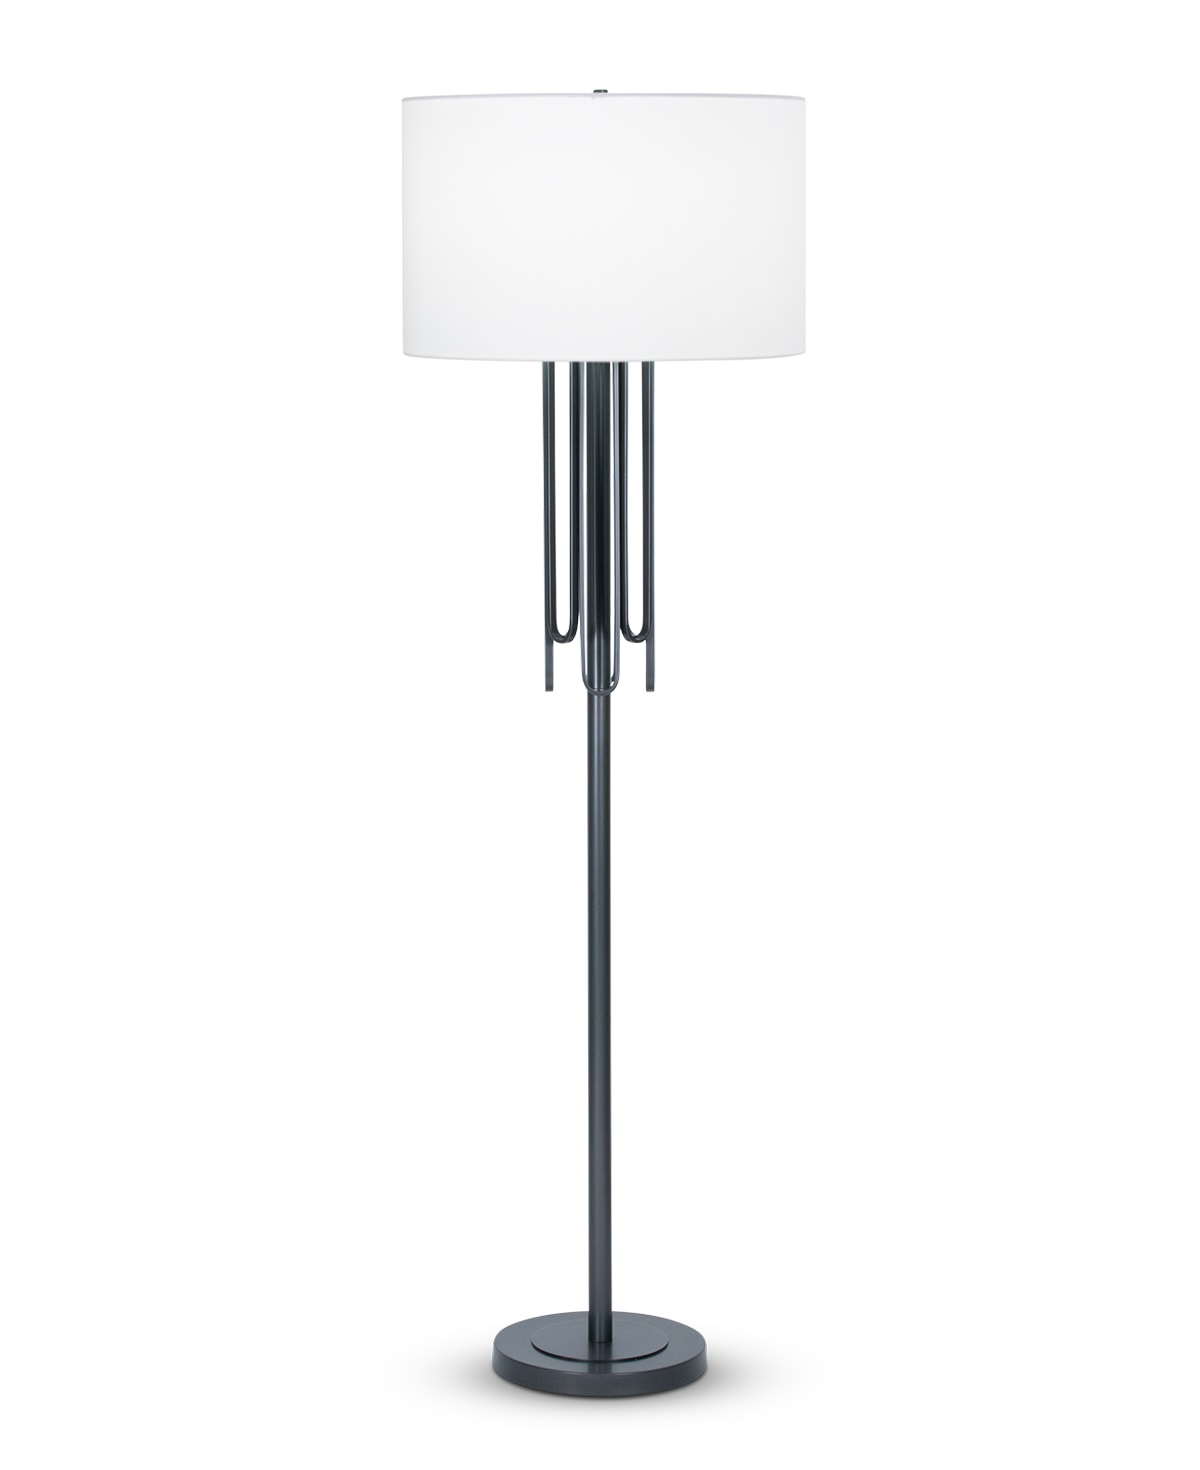 FlowDecor Barclay Floor Lamp in metal with gunmetal finish and off-white cotton drum shade (# 4489)